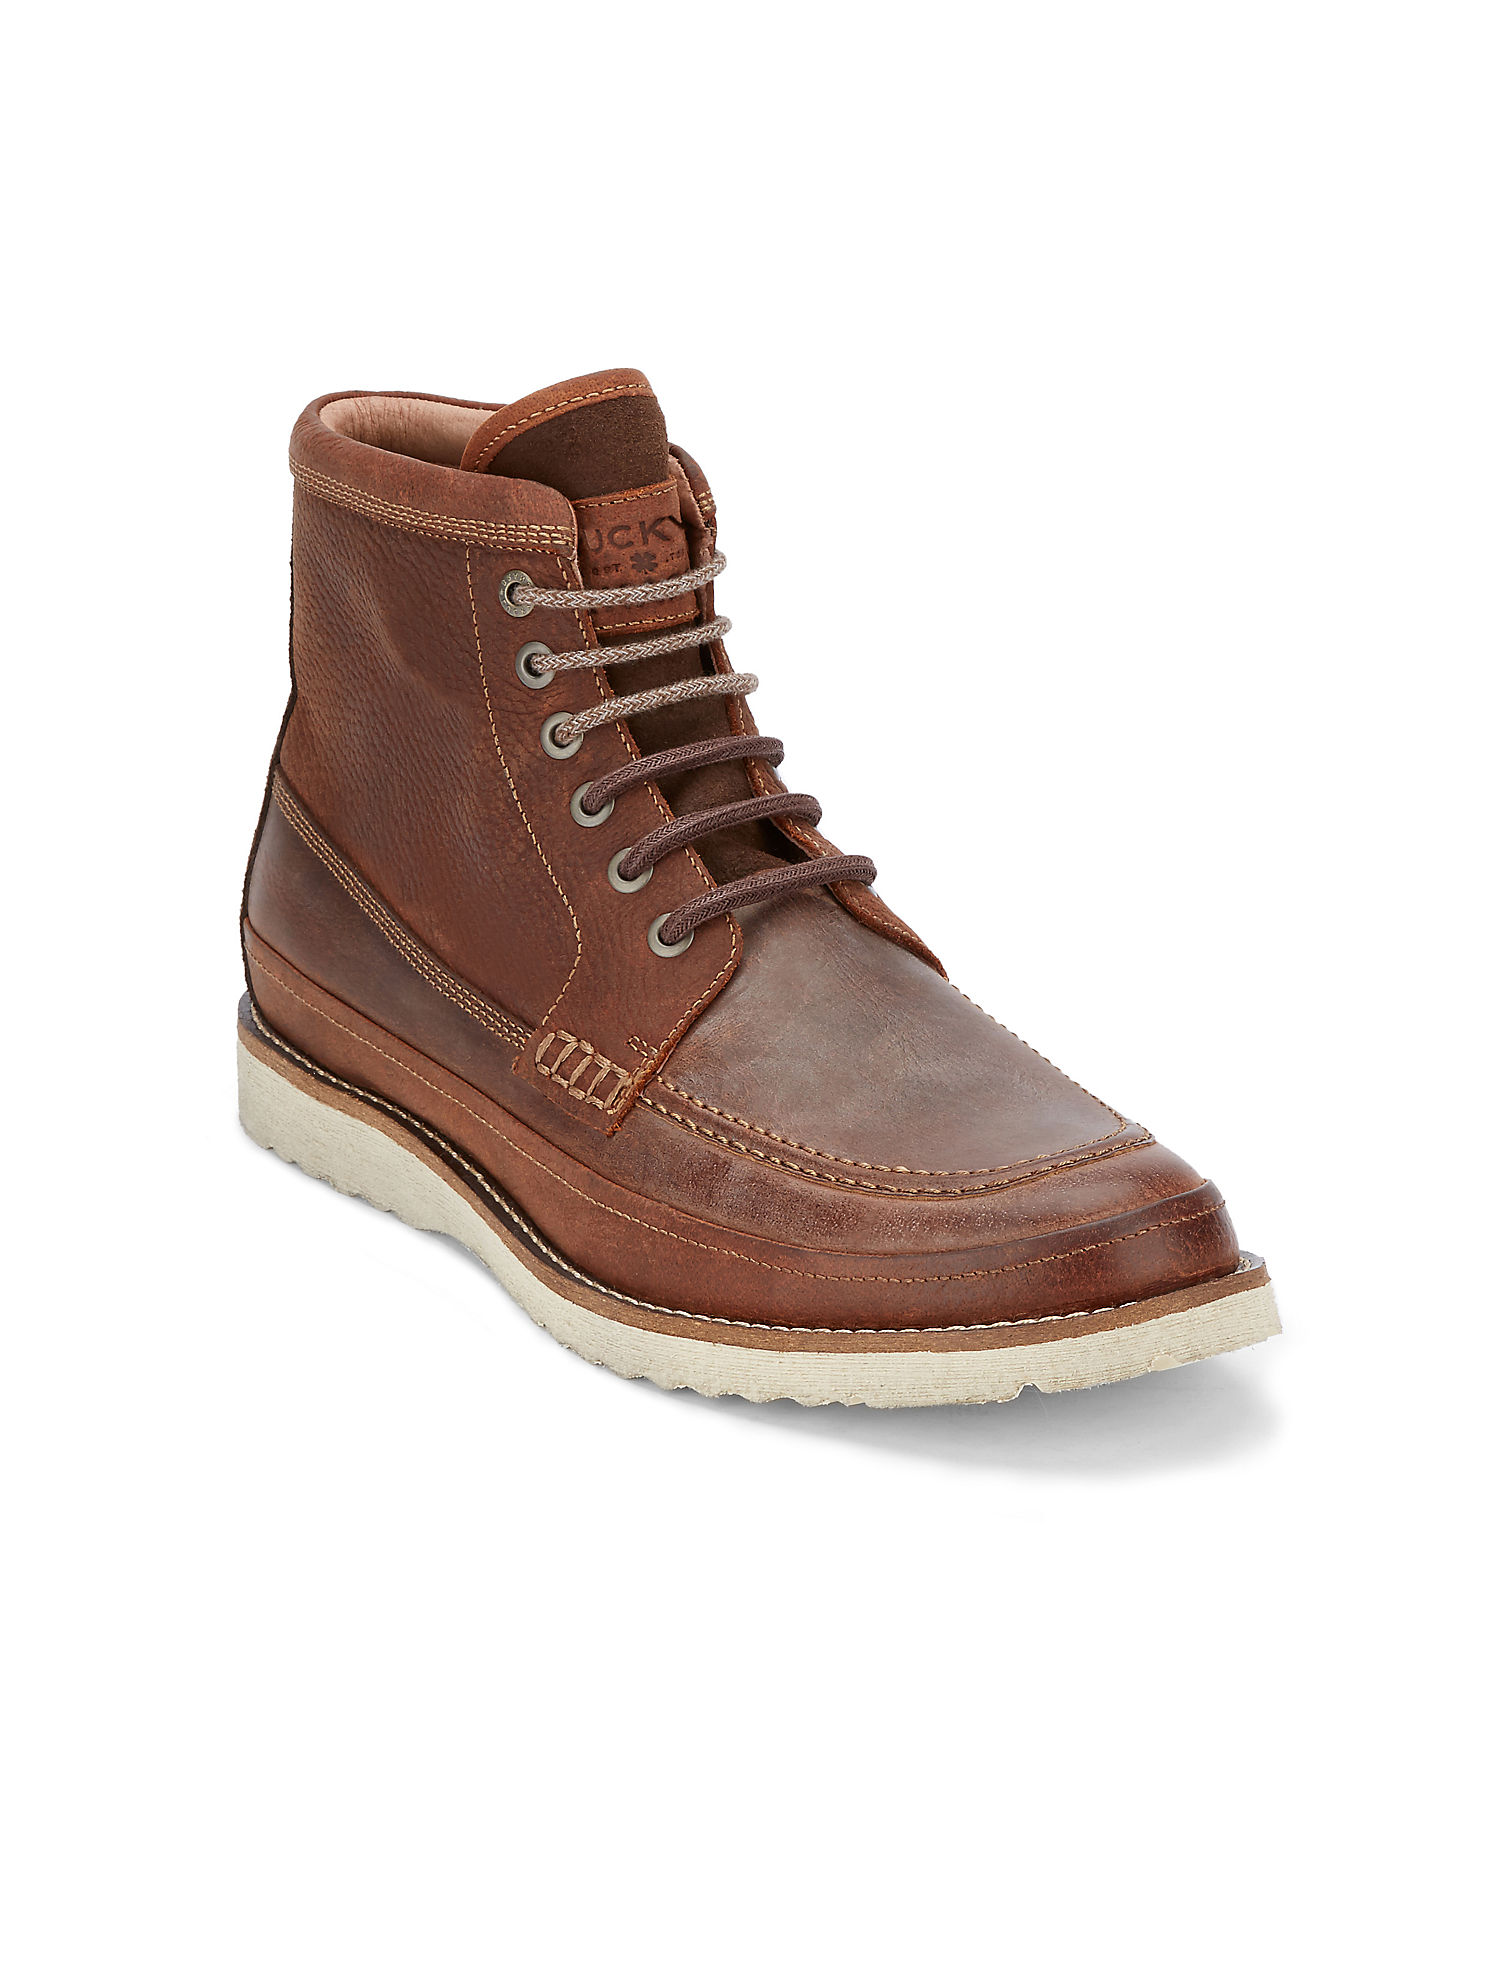 Mens Leather Boots | Lucky Brand